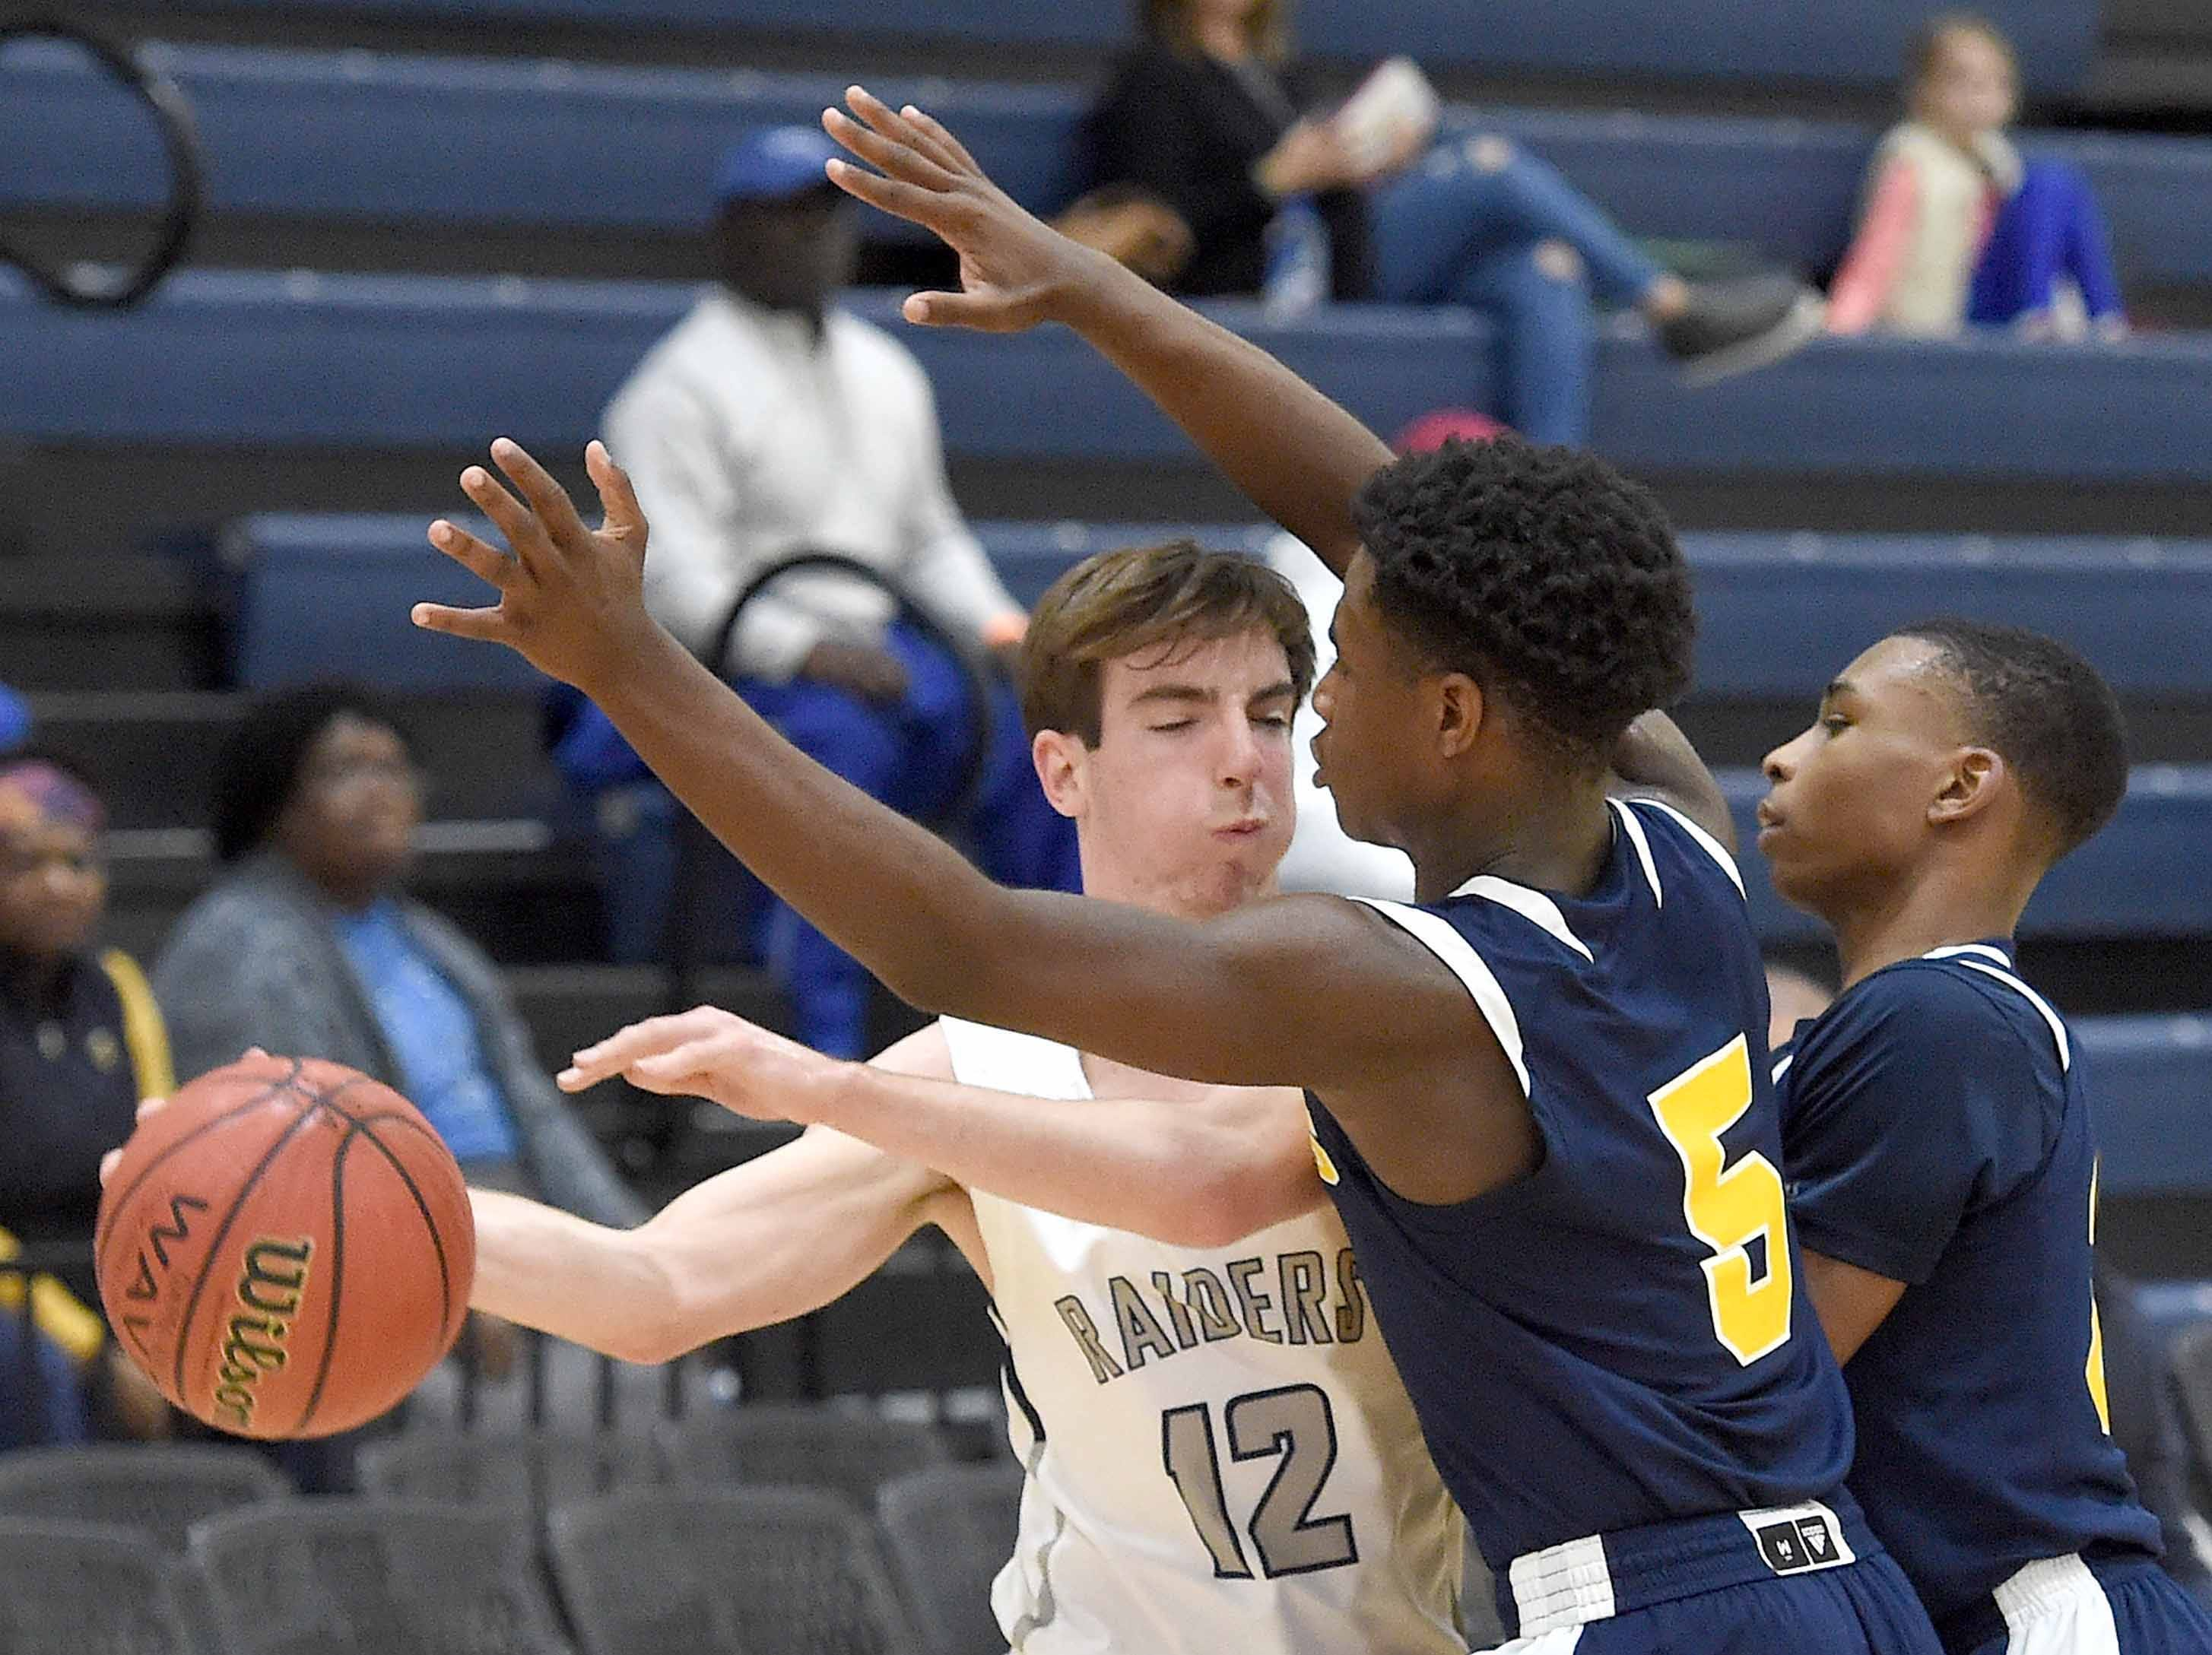 Jackson Academy's Will Travelstead (12) tries to beat a St. Joseph double team of Nathan Nickens (5) and Douglas Watson on Monday, January 21, 2019, at the Rumble in the South high school basketball tournament at St. Andrew's Episcopal School in Ridgeland, Miss.